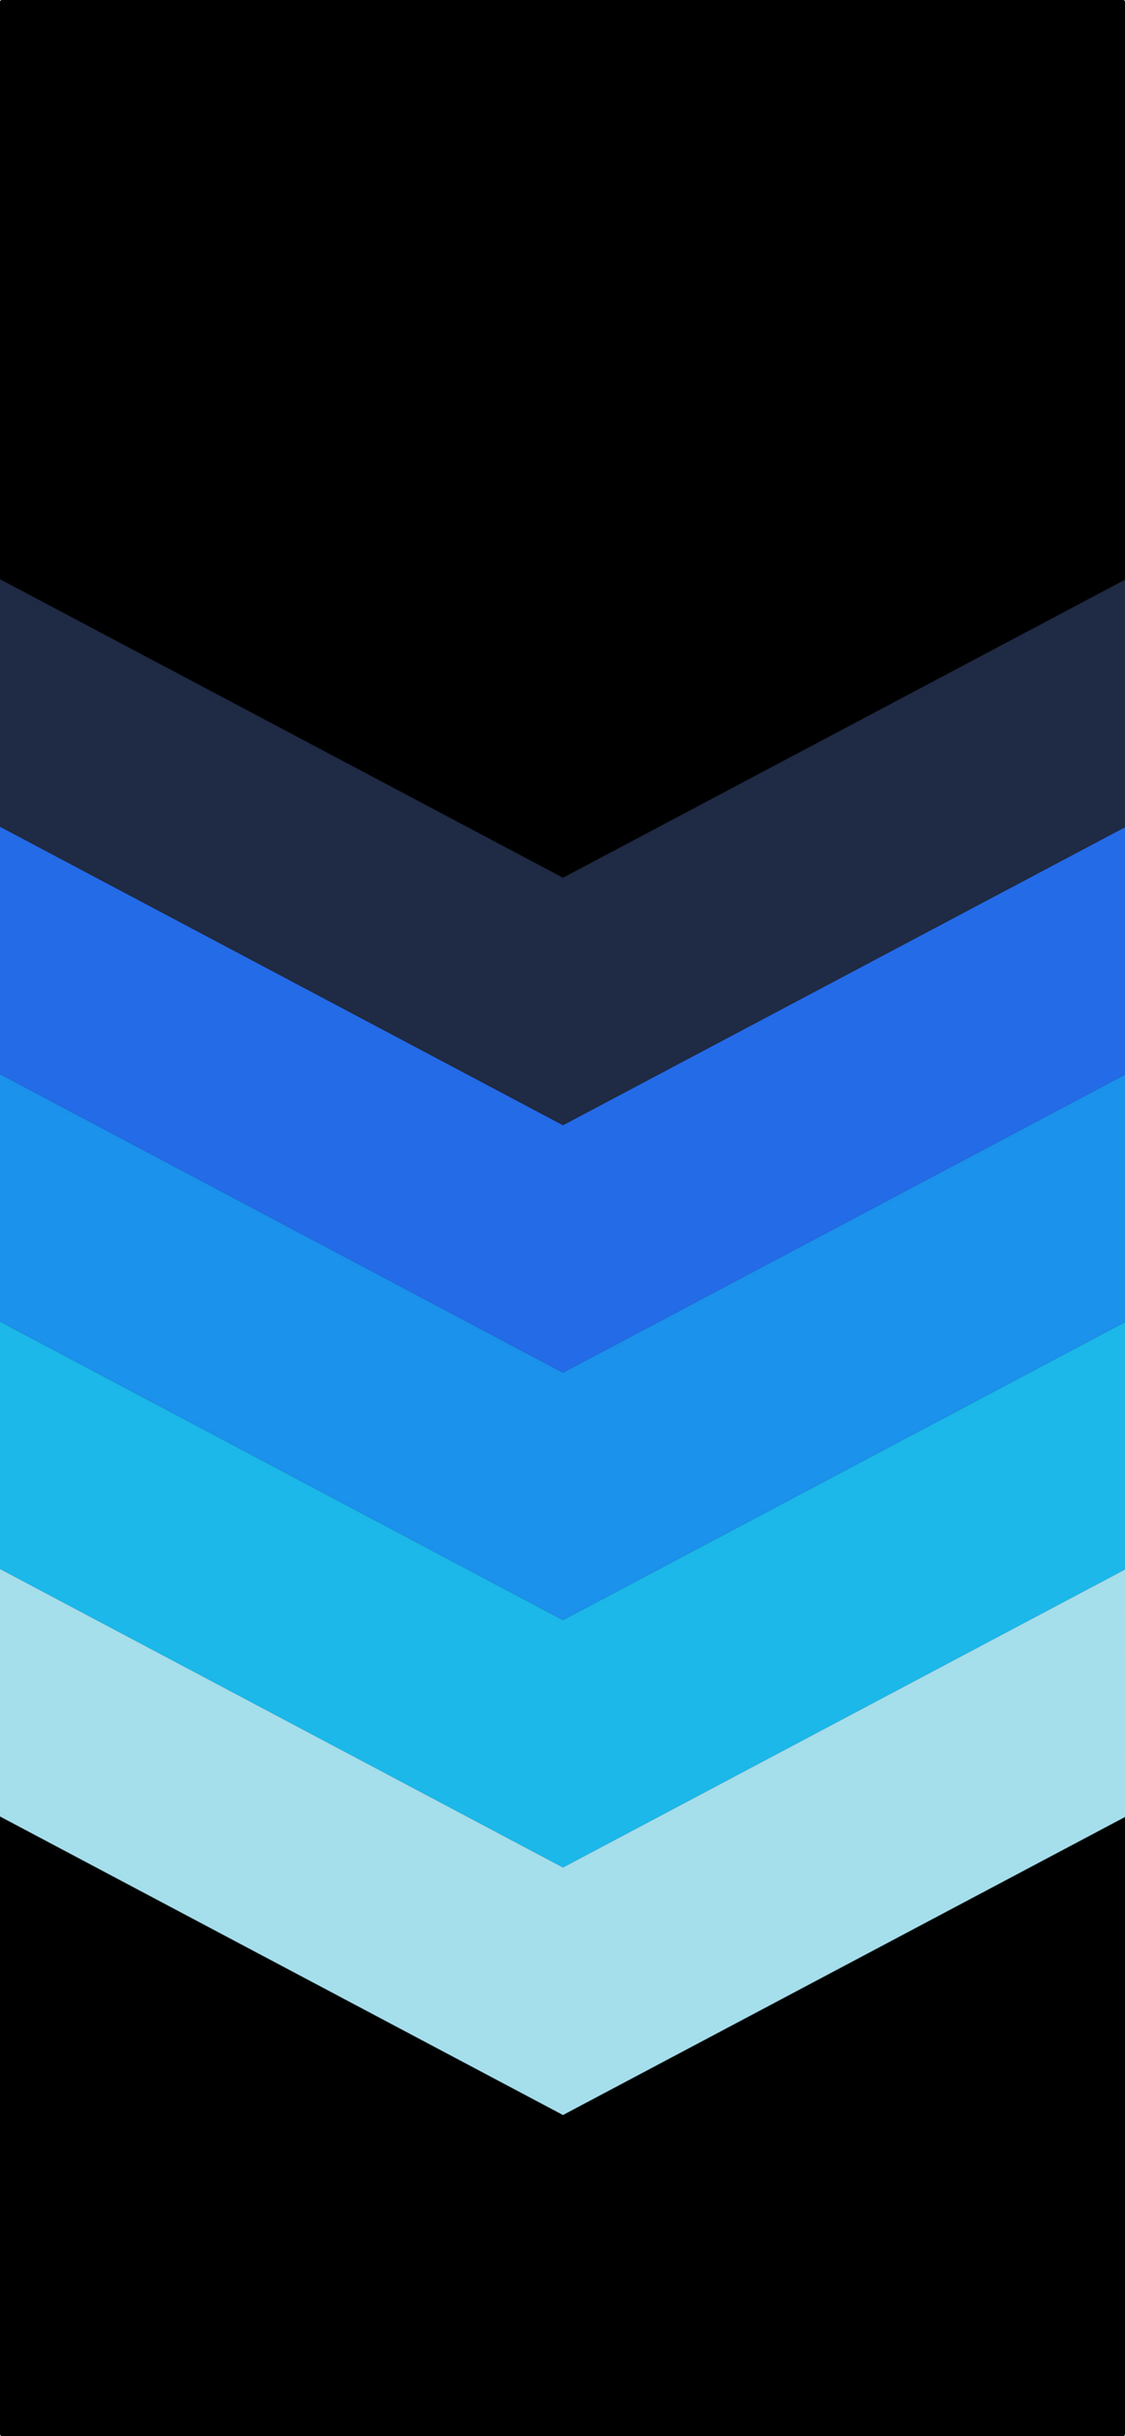 Download Cool Blue Background For Iphone 2019 Mkbhd Wallpapers